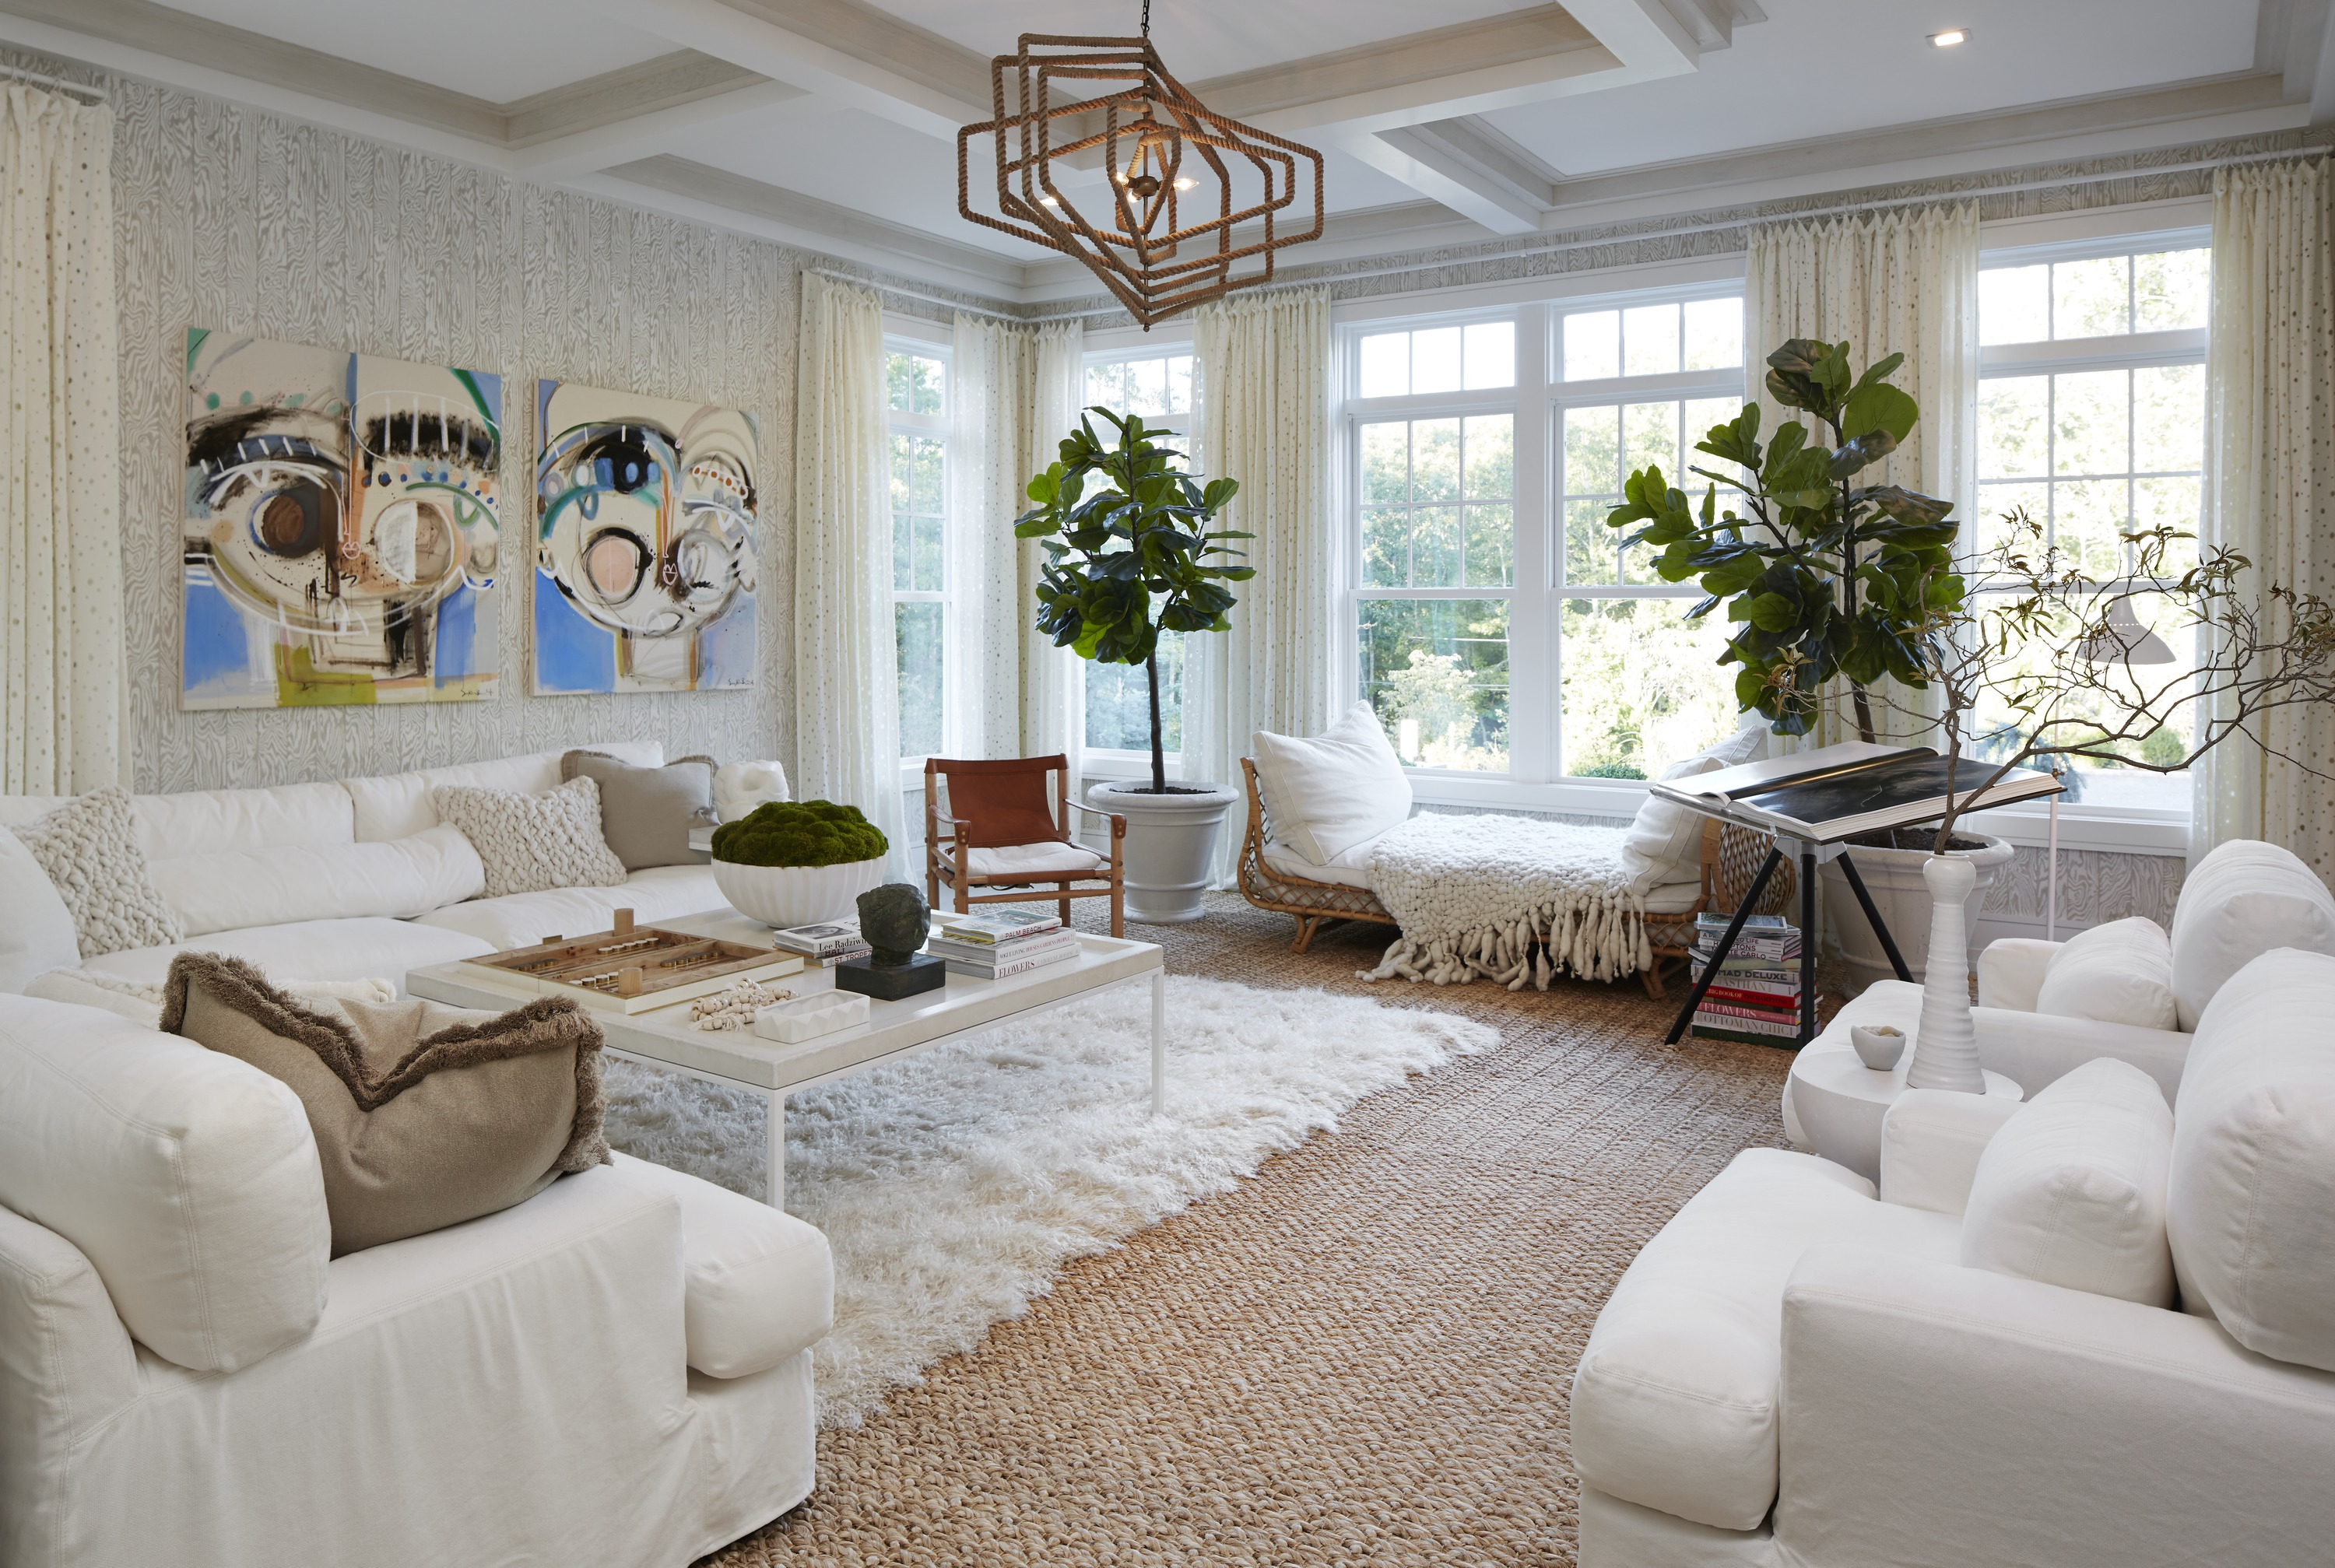 White overstuffed furniture, plush rugs and throws welcome guests into the home's first-floor living room with a casual crispness. Bold art pieces give the space a contemporary flair.